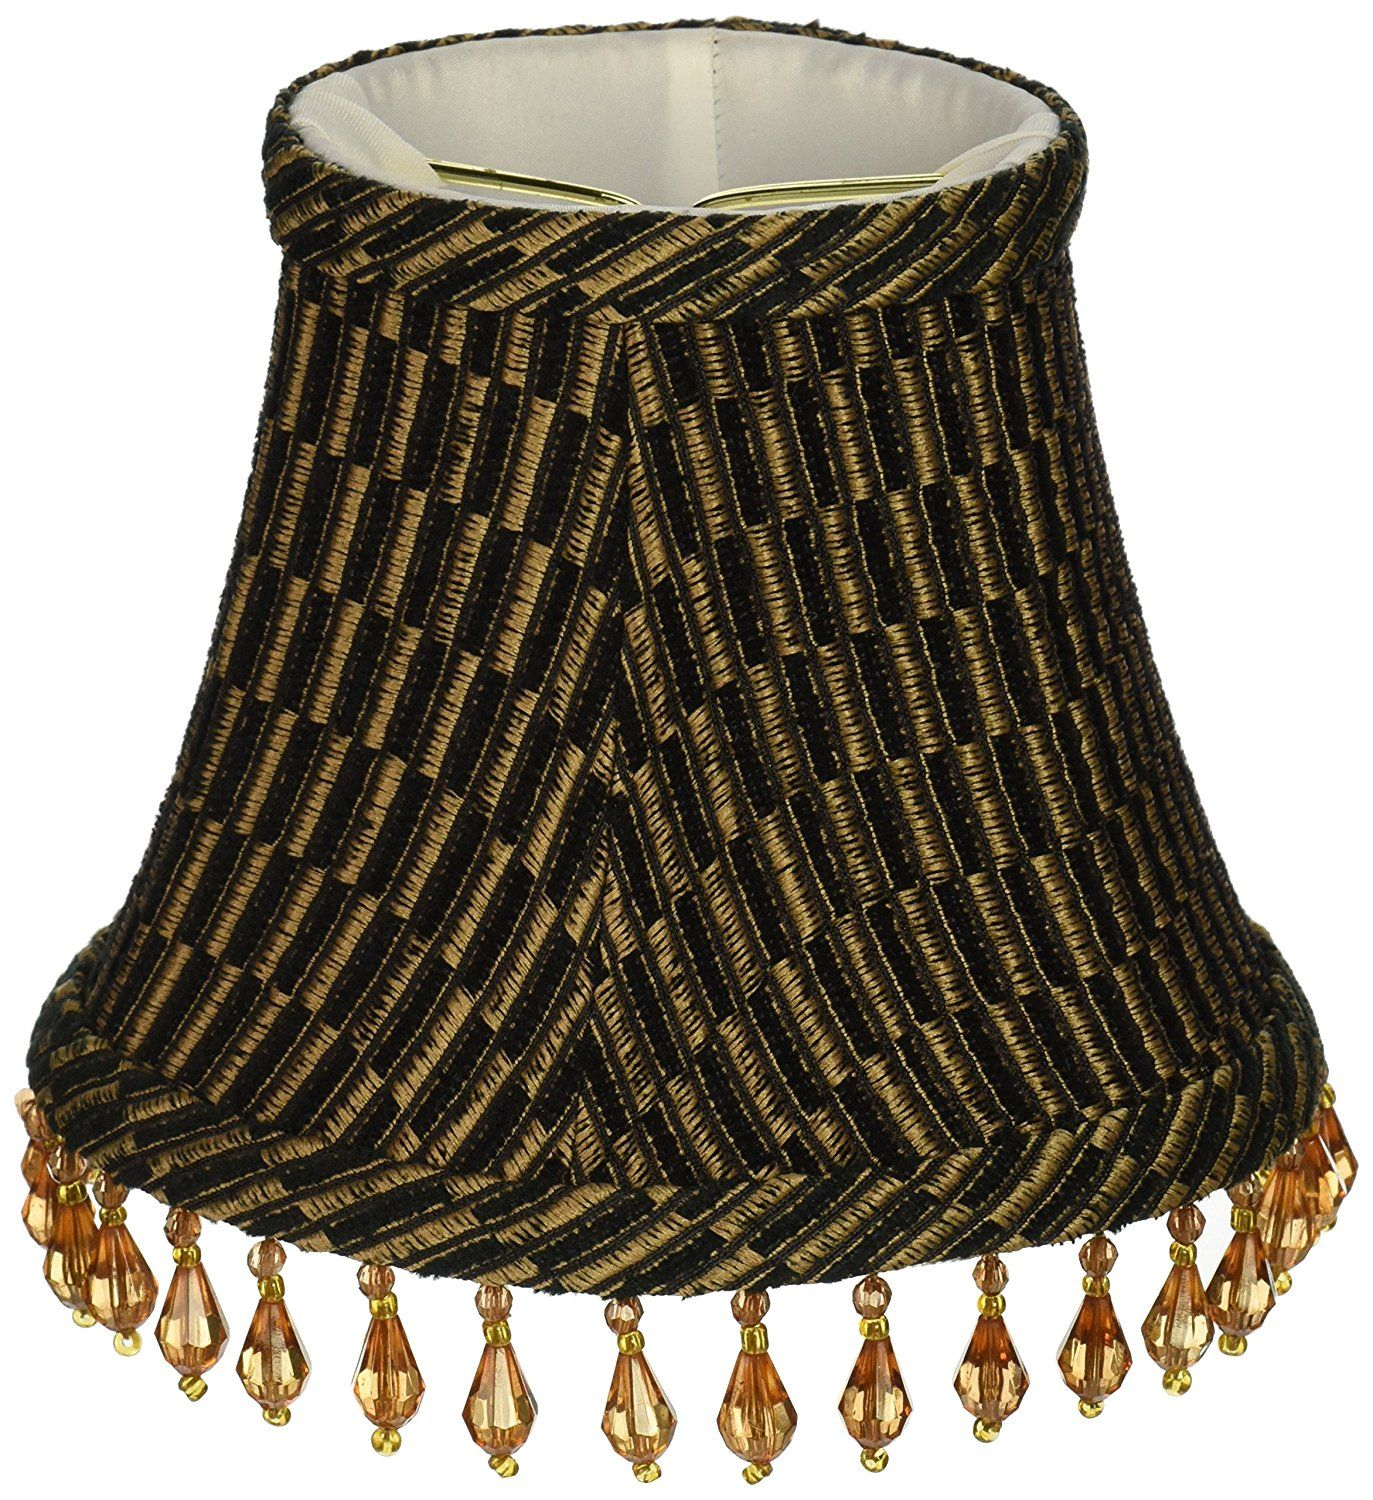 Lamp Chandelier Lamp Shades Upgradelights Set 6 Barrel Shades